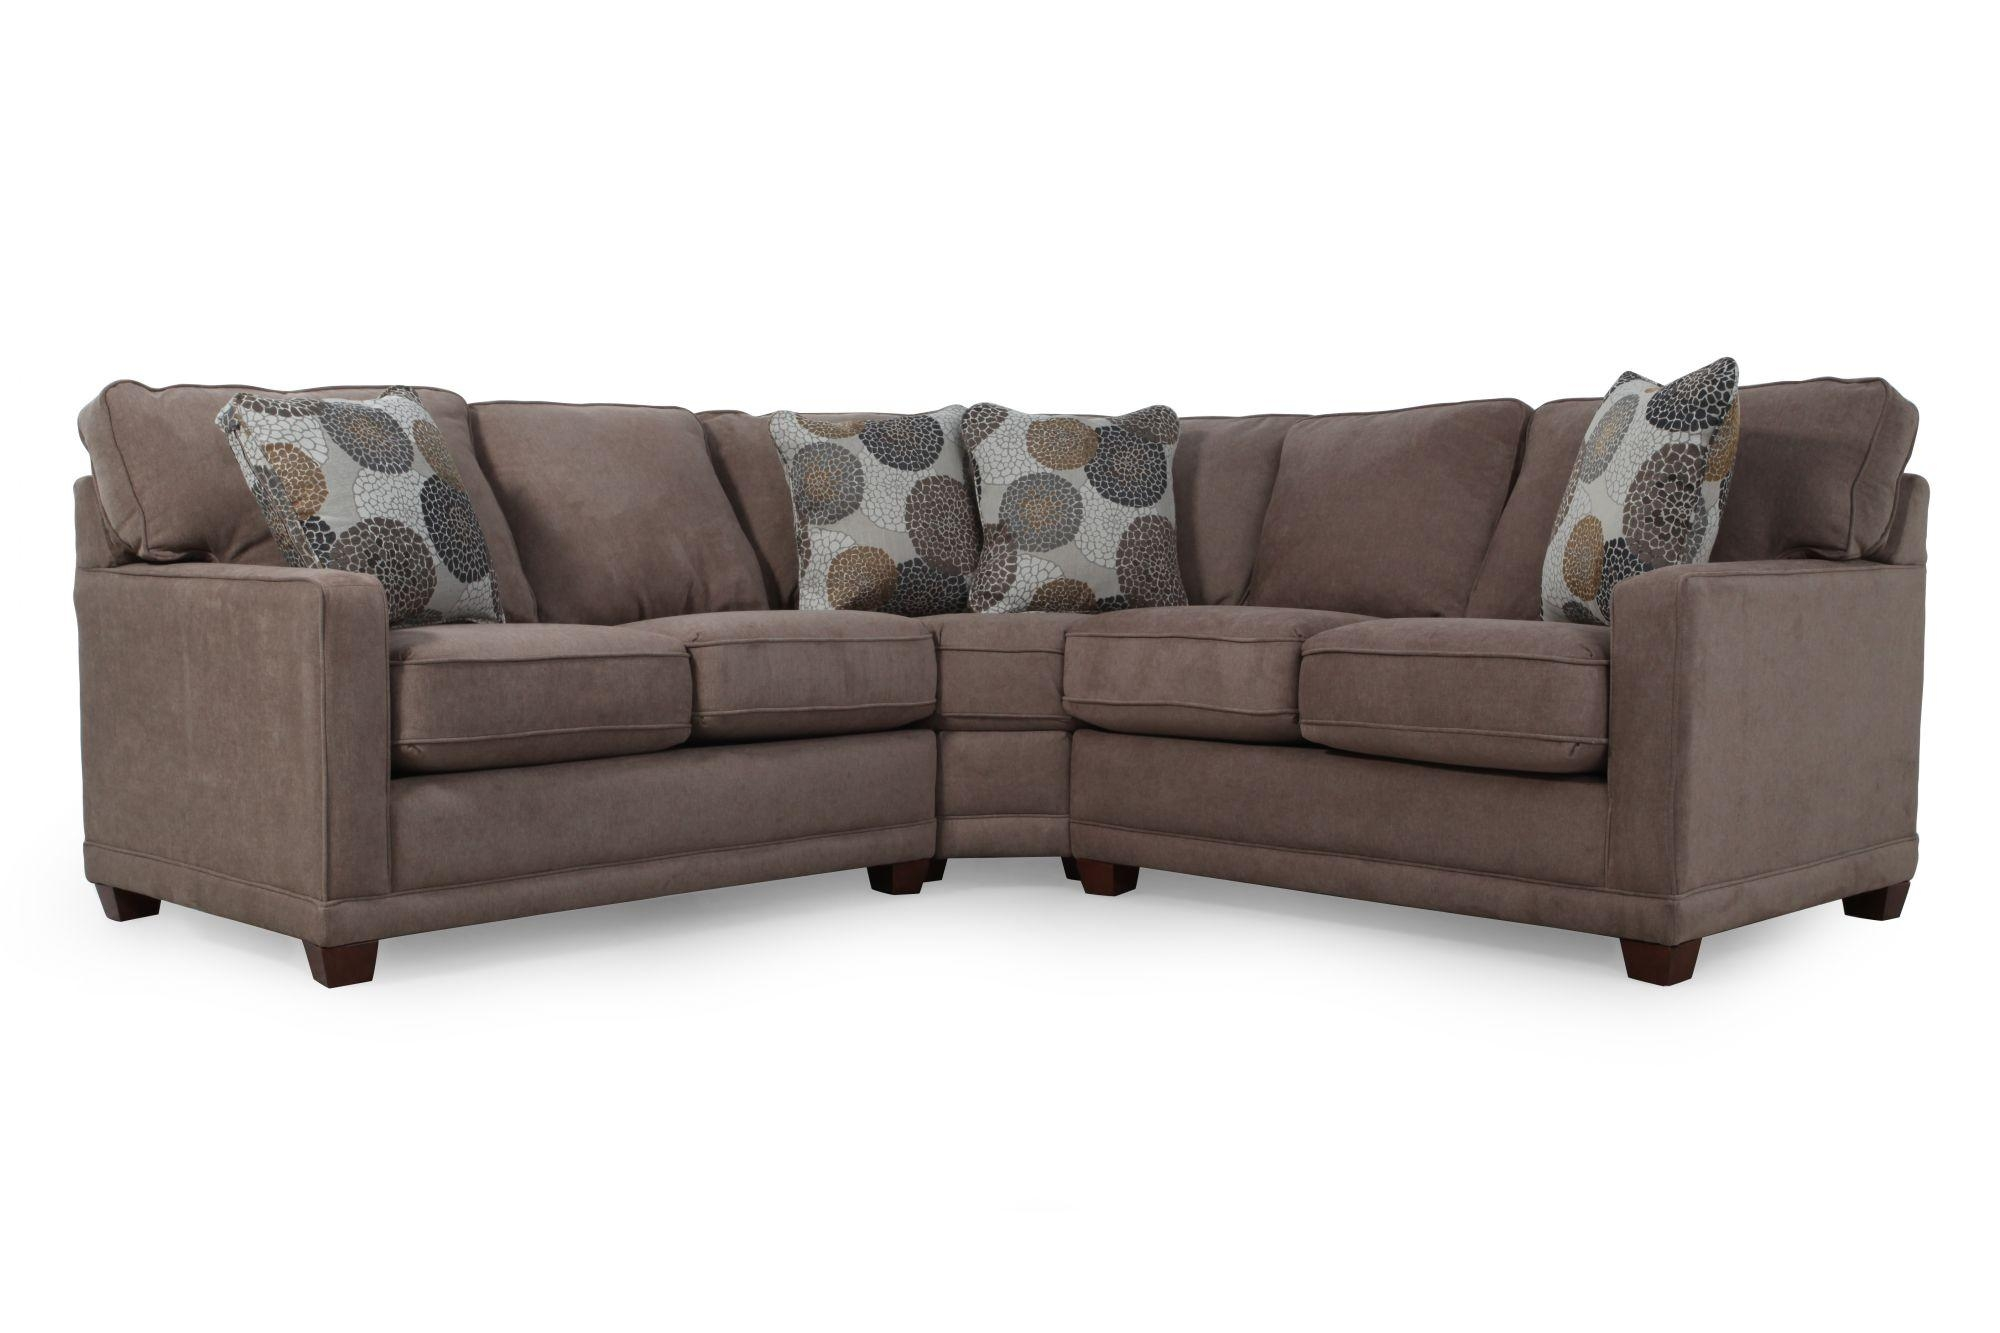 Furniture: Impressive Lazy Boy Sectional For Living Room Furniture Pertaining To Lazyboy Sectional (View 10 of 20)